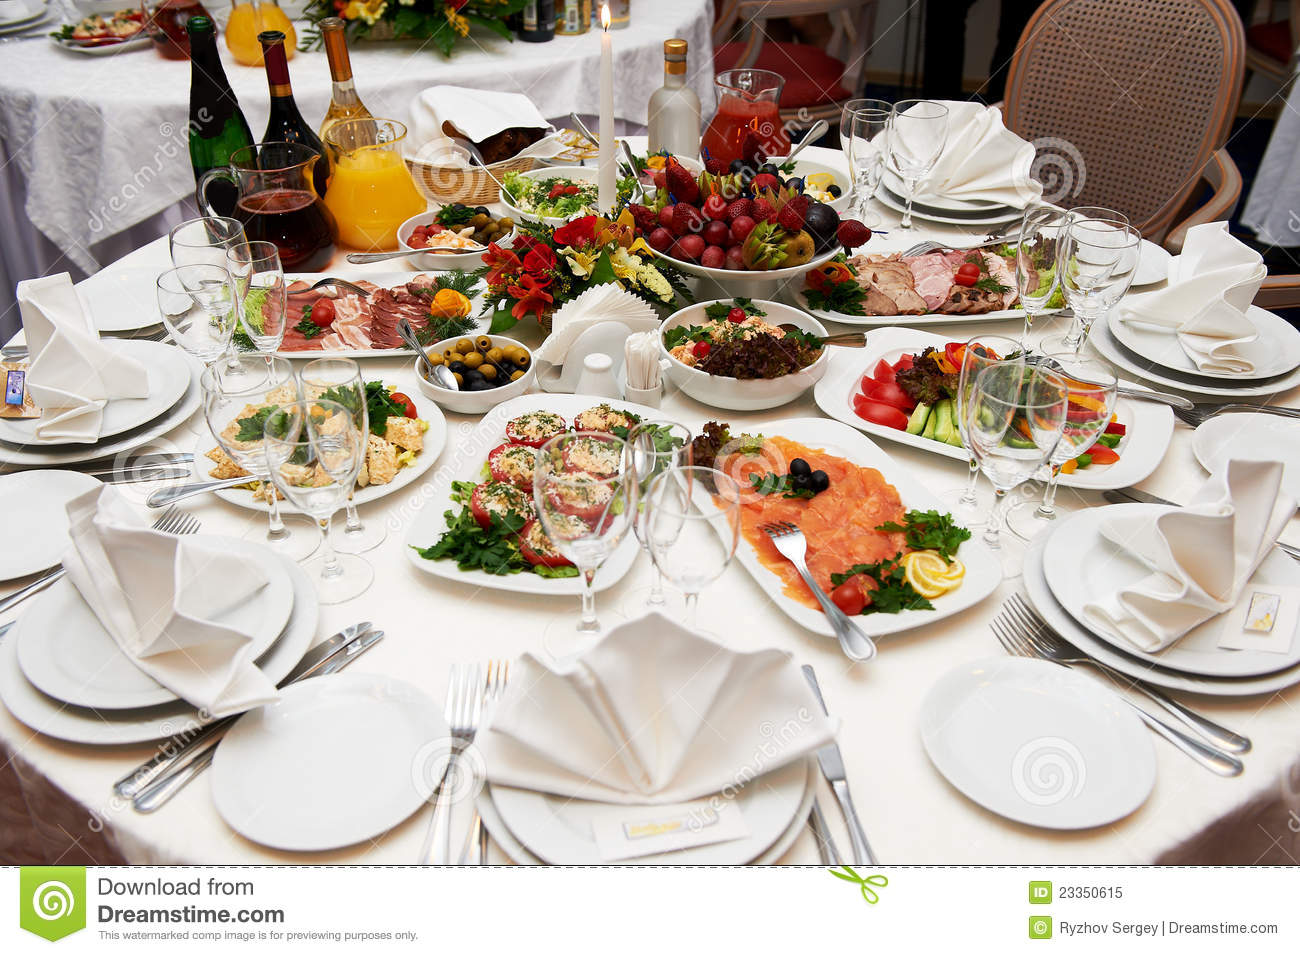 Festive Table Setting For Banquet Royalty Free Stock Photo Image 23350615